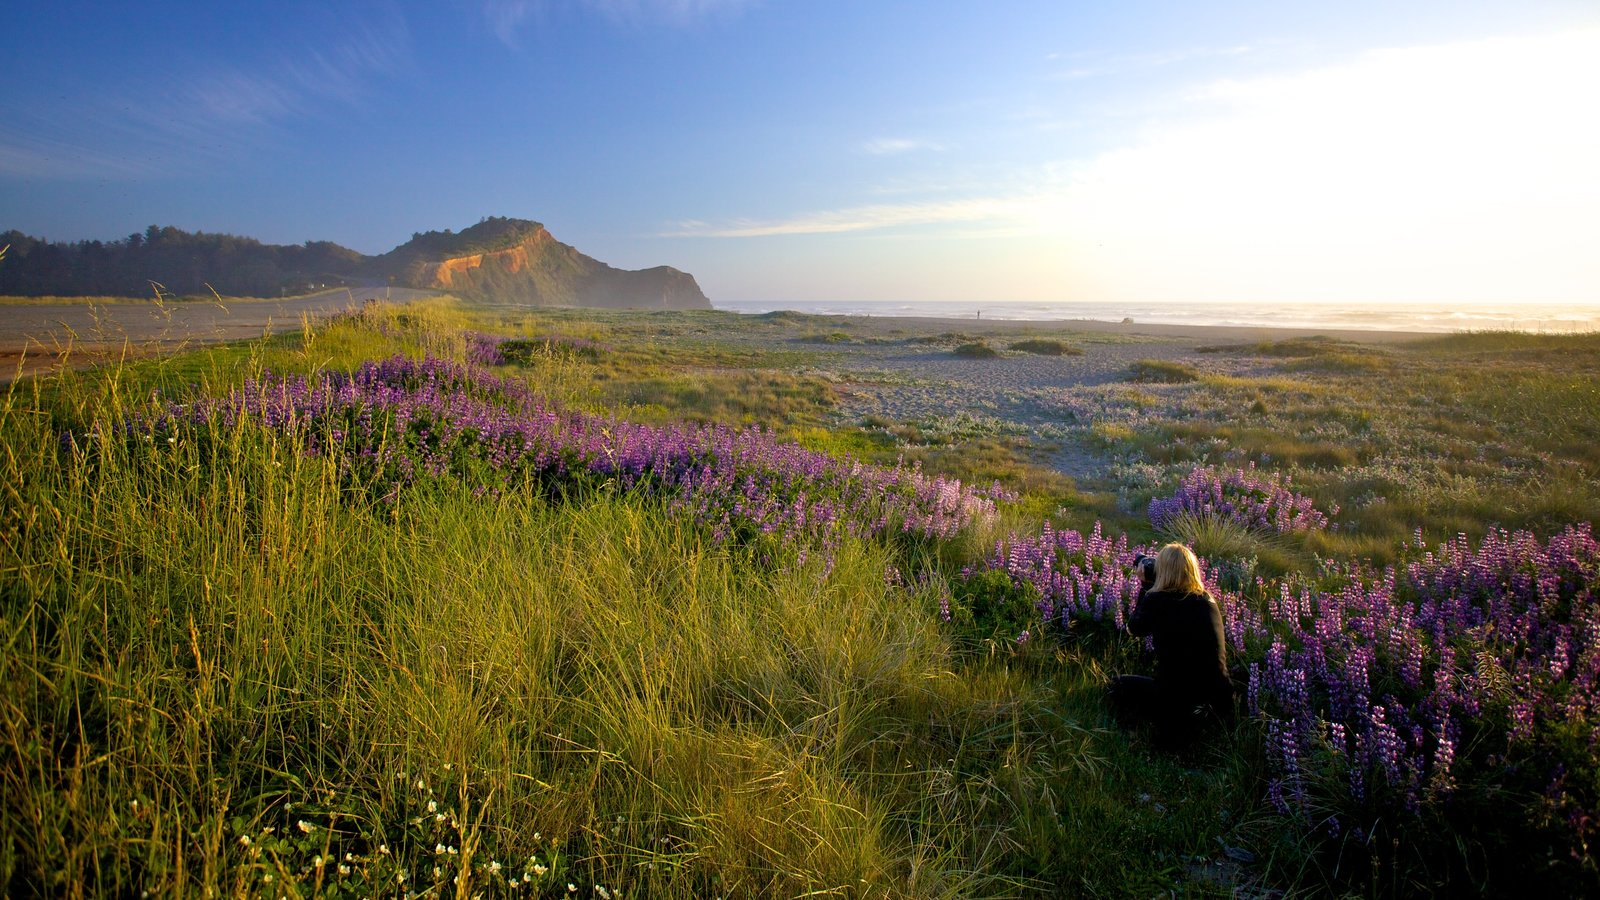 Redwood National and State Parks which includes landscape views, wildflowers and tranquil scenes